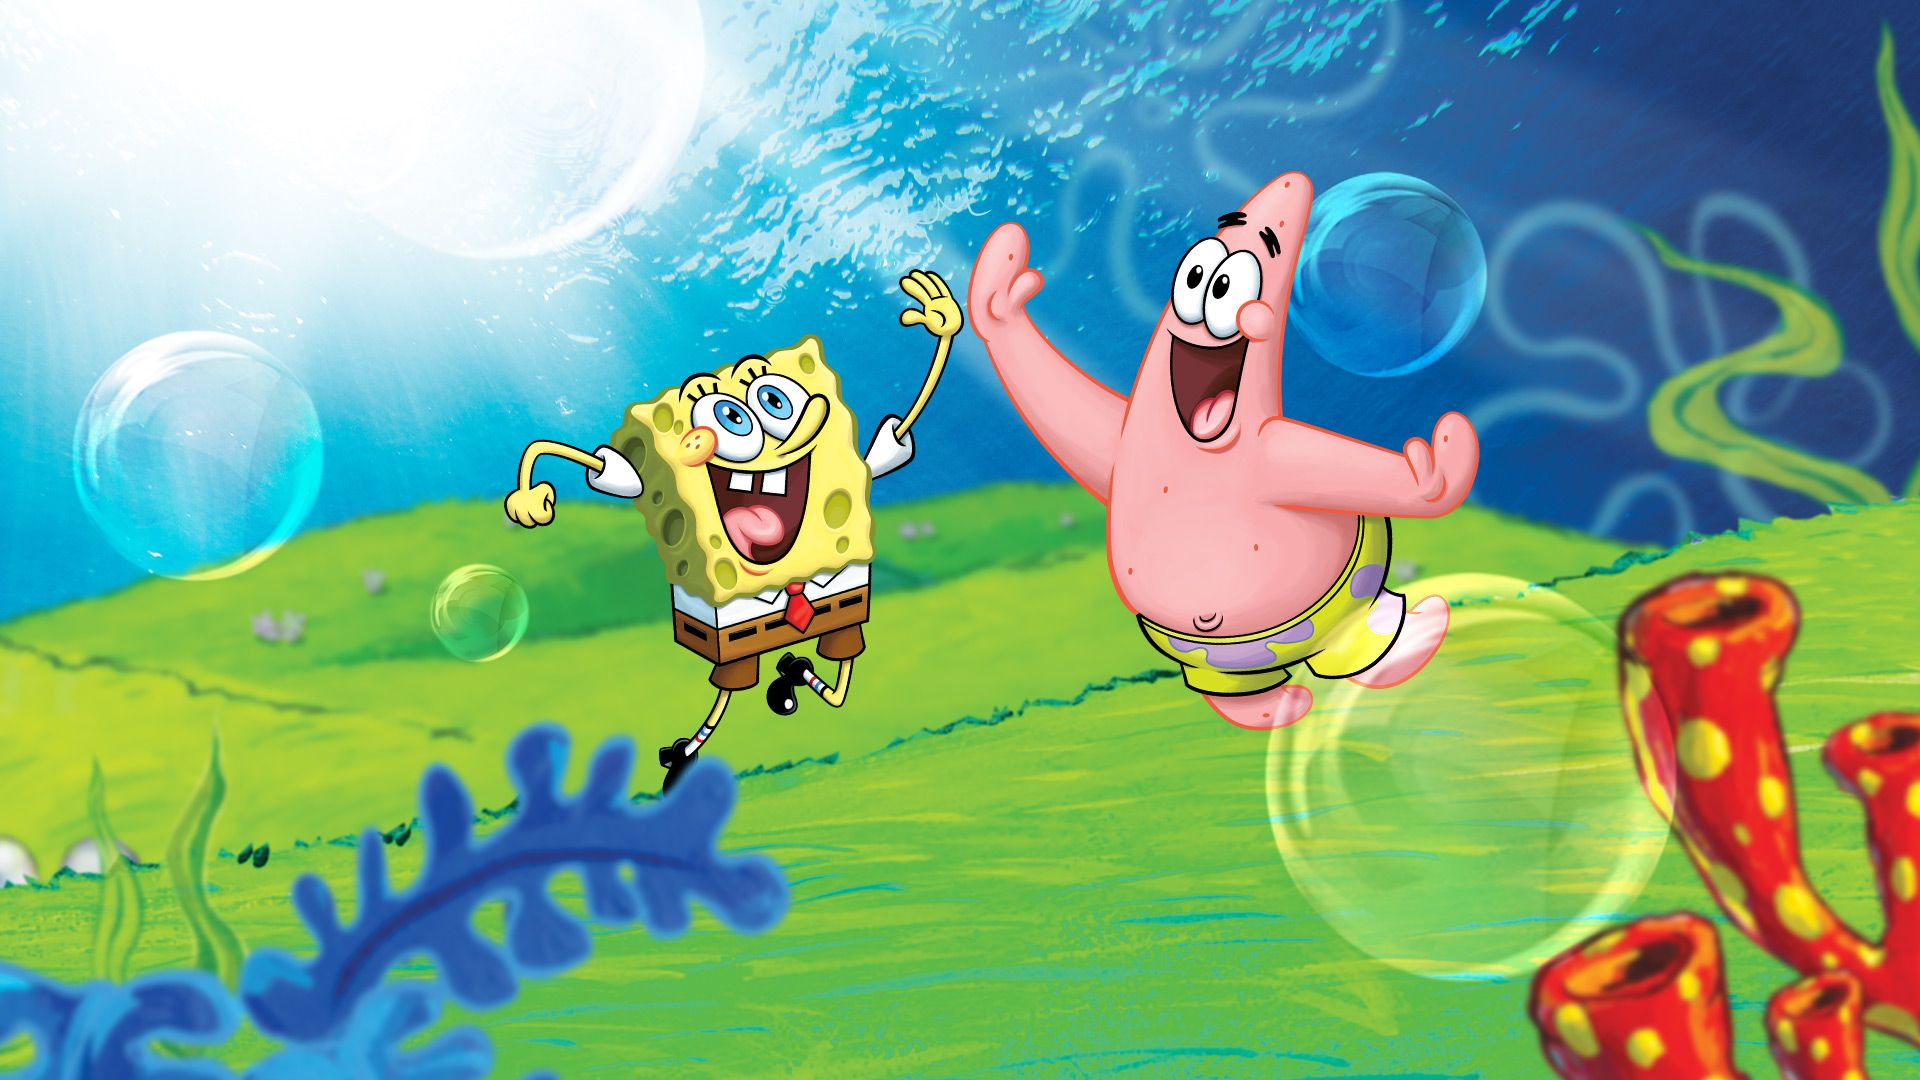 THE SPONGEBOB MOVIE: IT'S A WONDERFUL SPONGE Will Be An Origin Tale